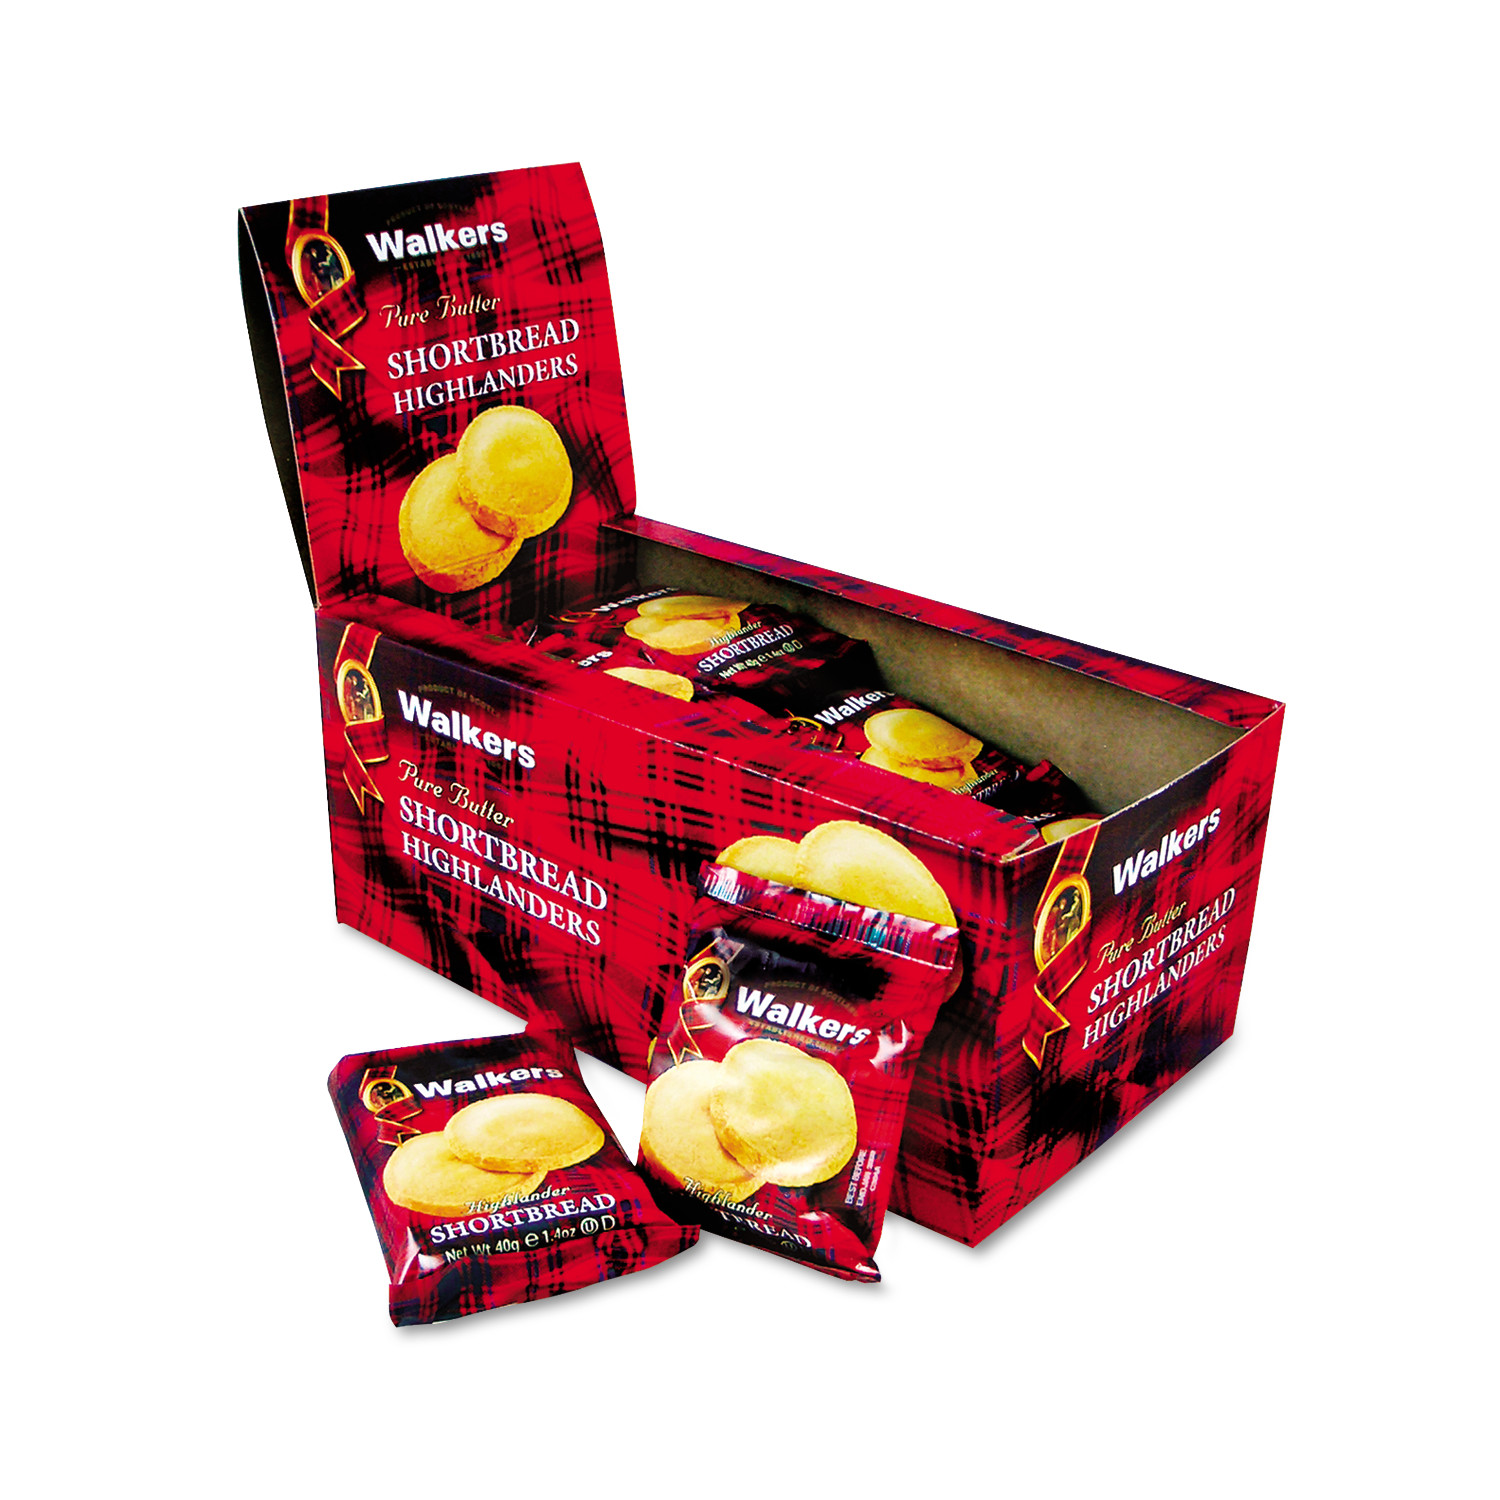 Walkers Shortbread Highlander Cookies, 1.4oz, 2 Pack, 12 Packs/Box